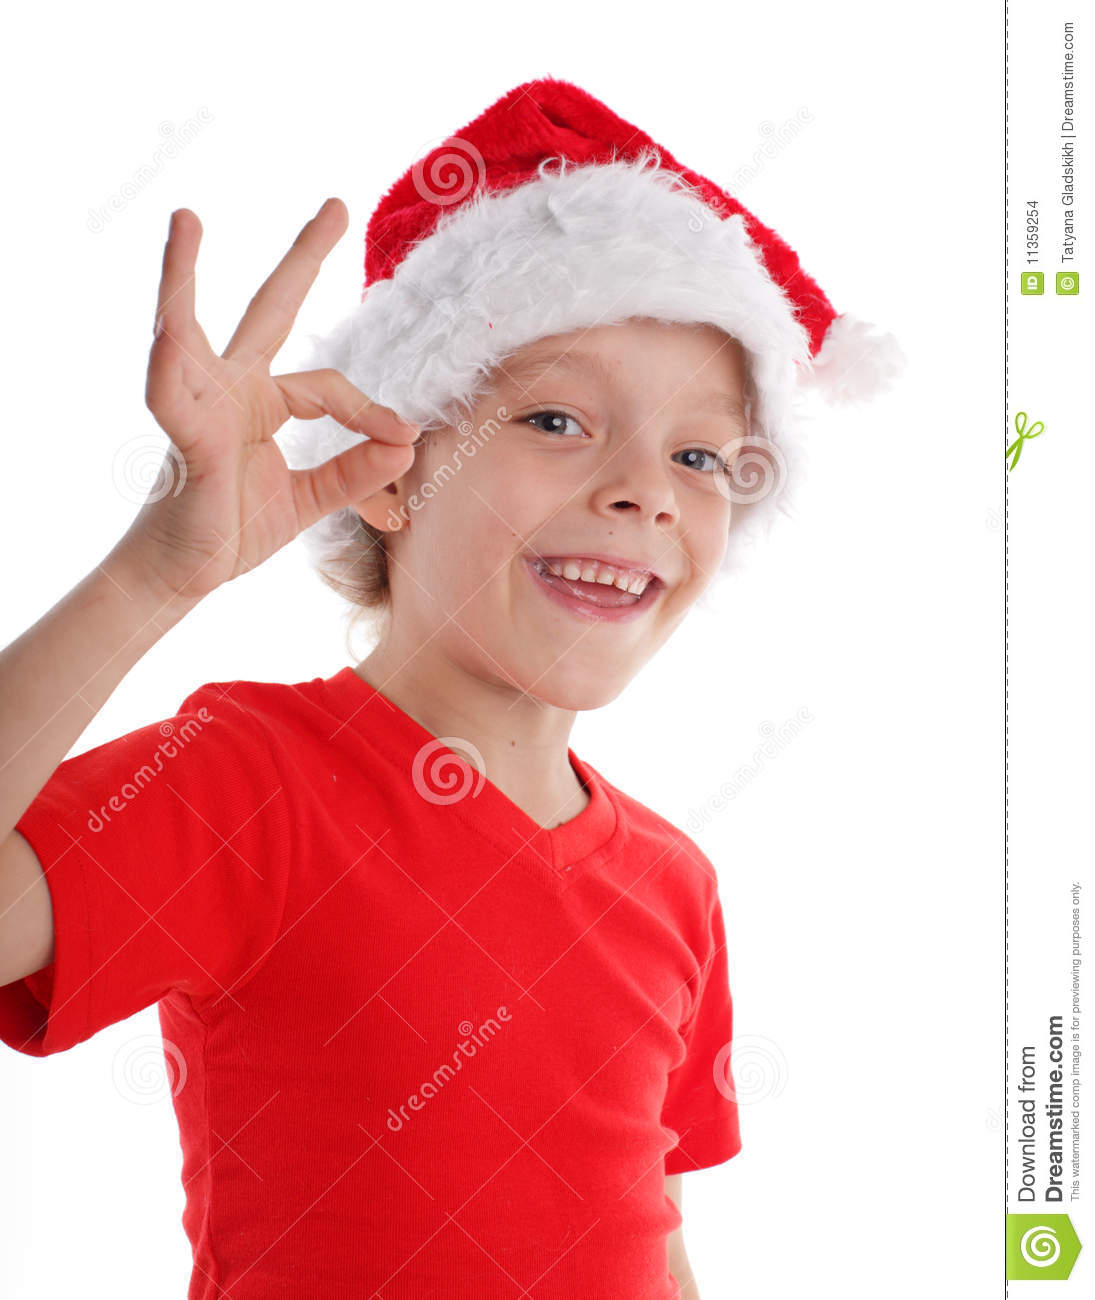 Happy Child In Christmas Hat Stock Images - Image: 11359254